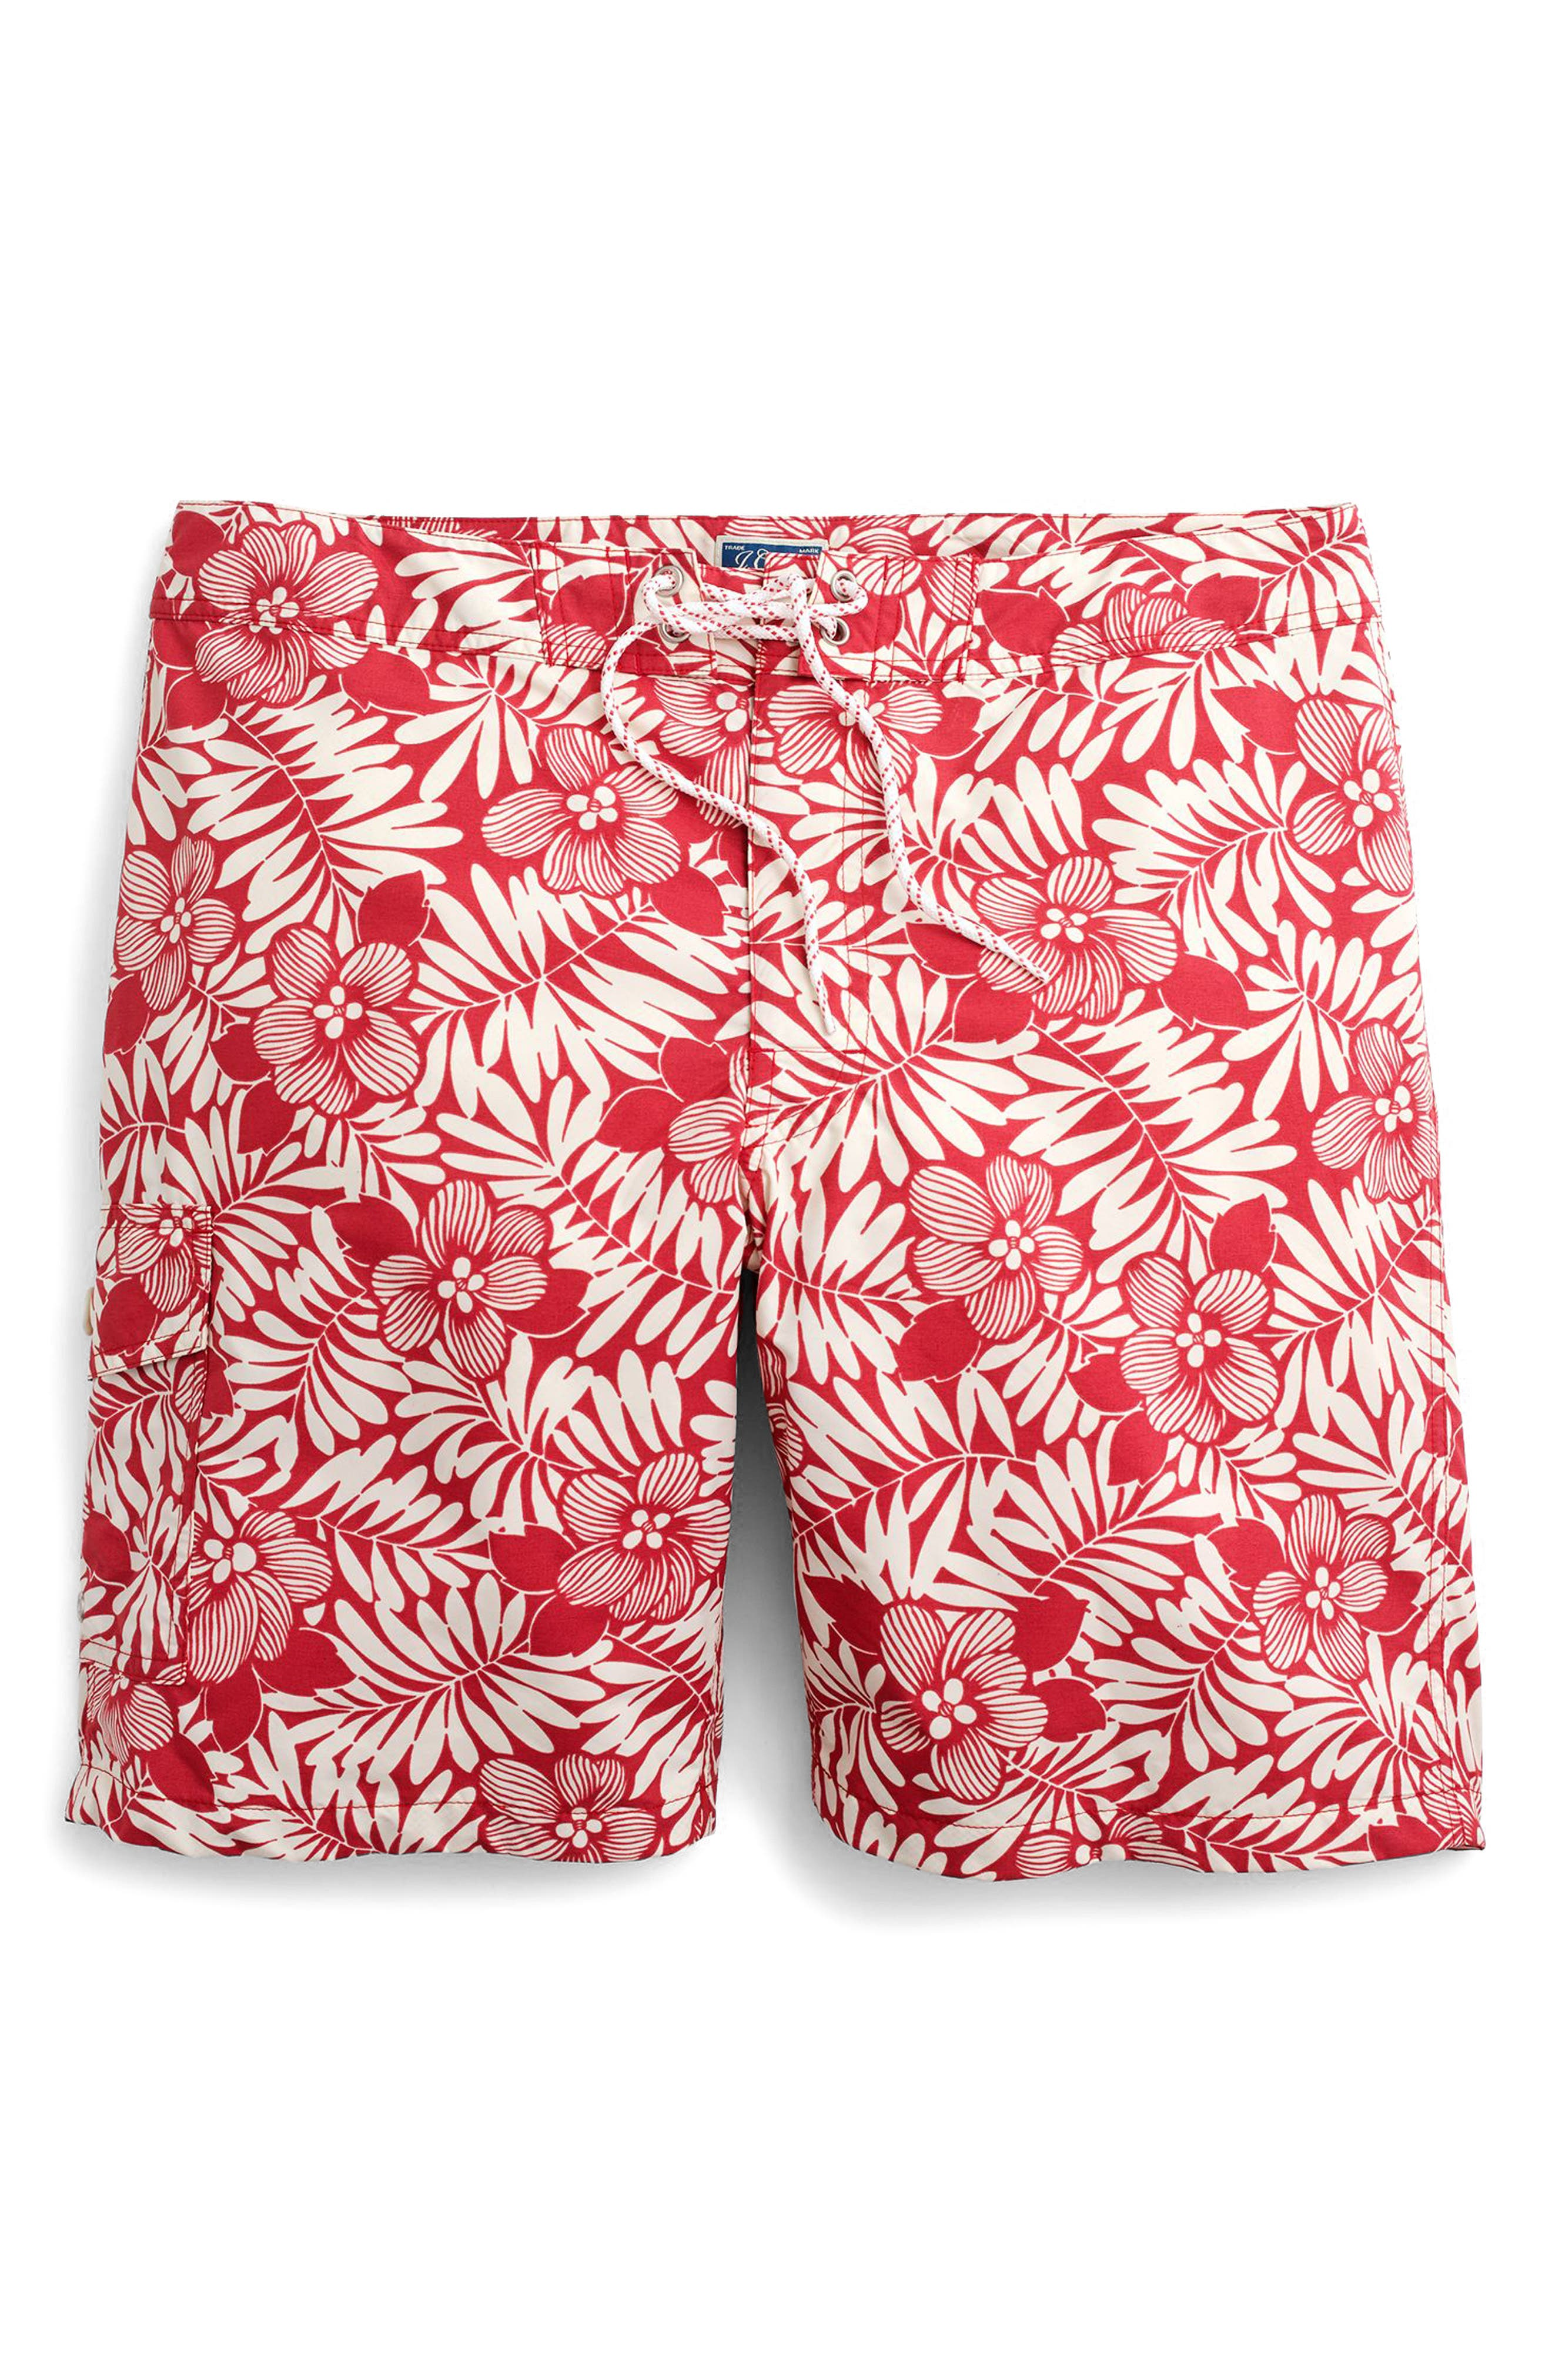 Fern Print Board Shorts,                             Alternate thumbnail 3, color,                             Red Ivory